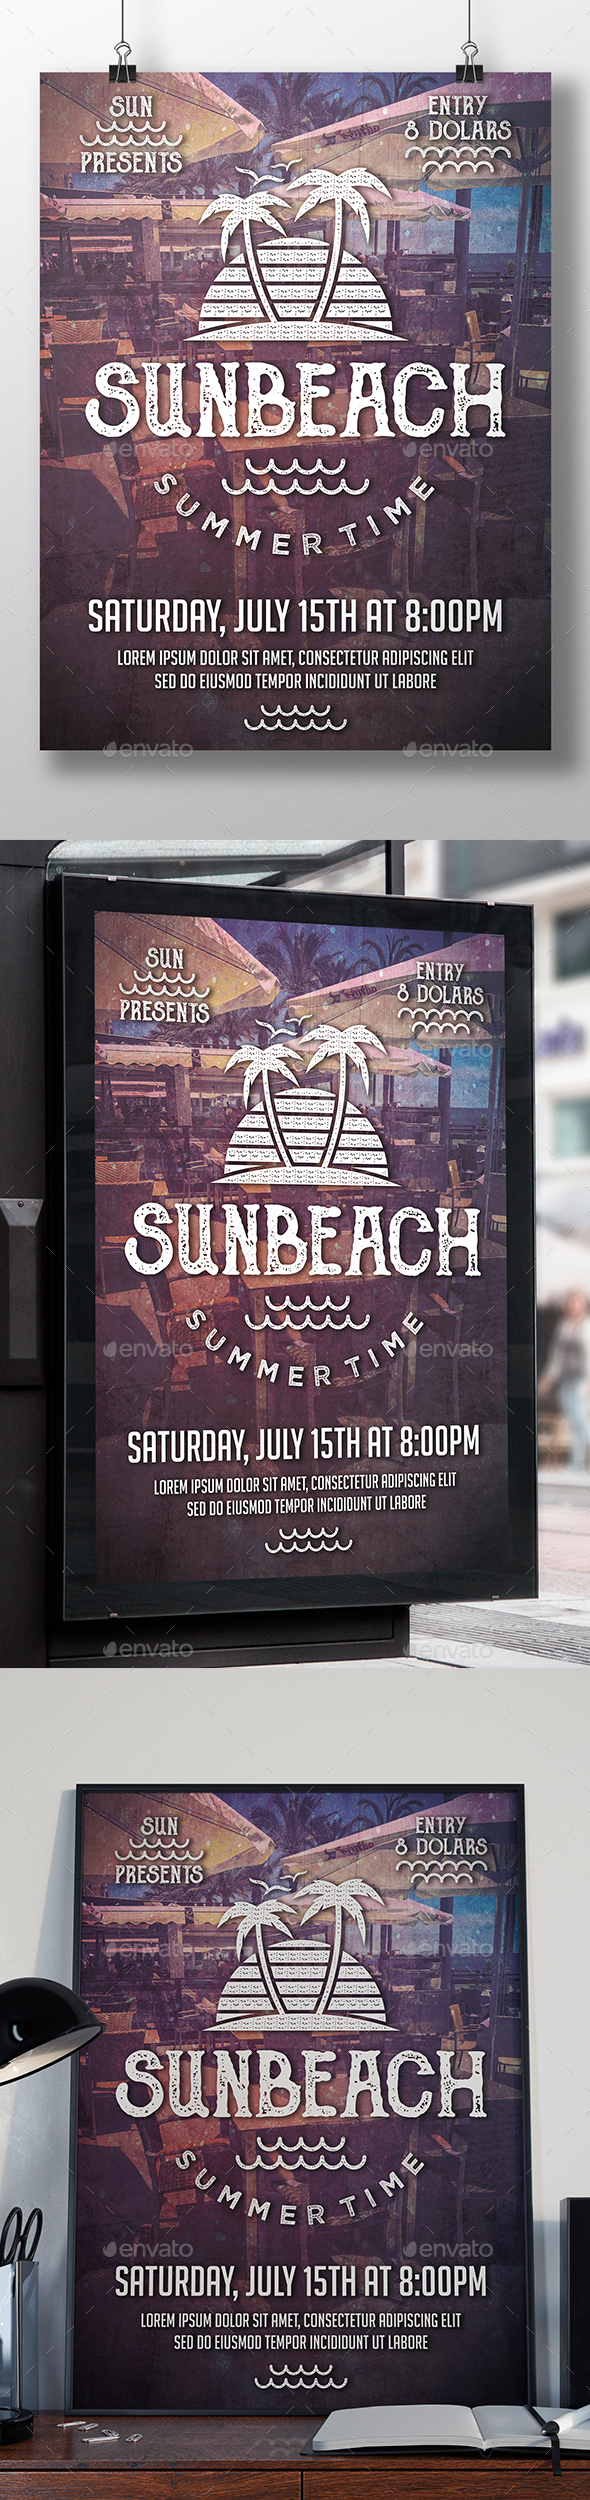 Sun Beach Fest Flyer Template - Clubs & Parties Events